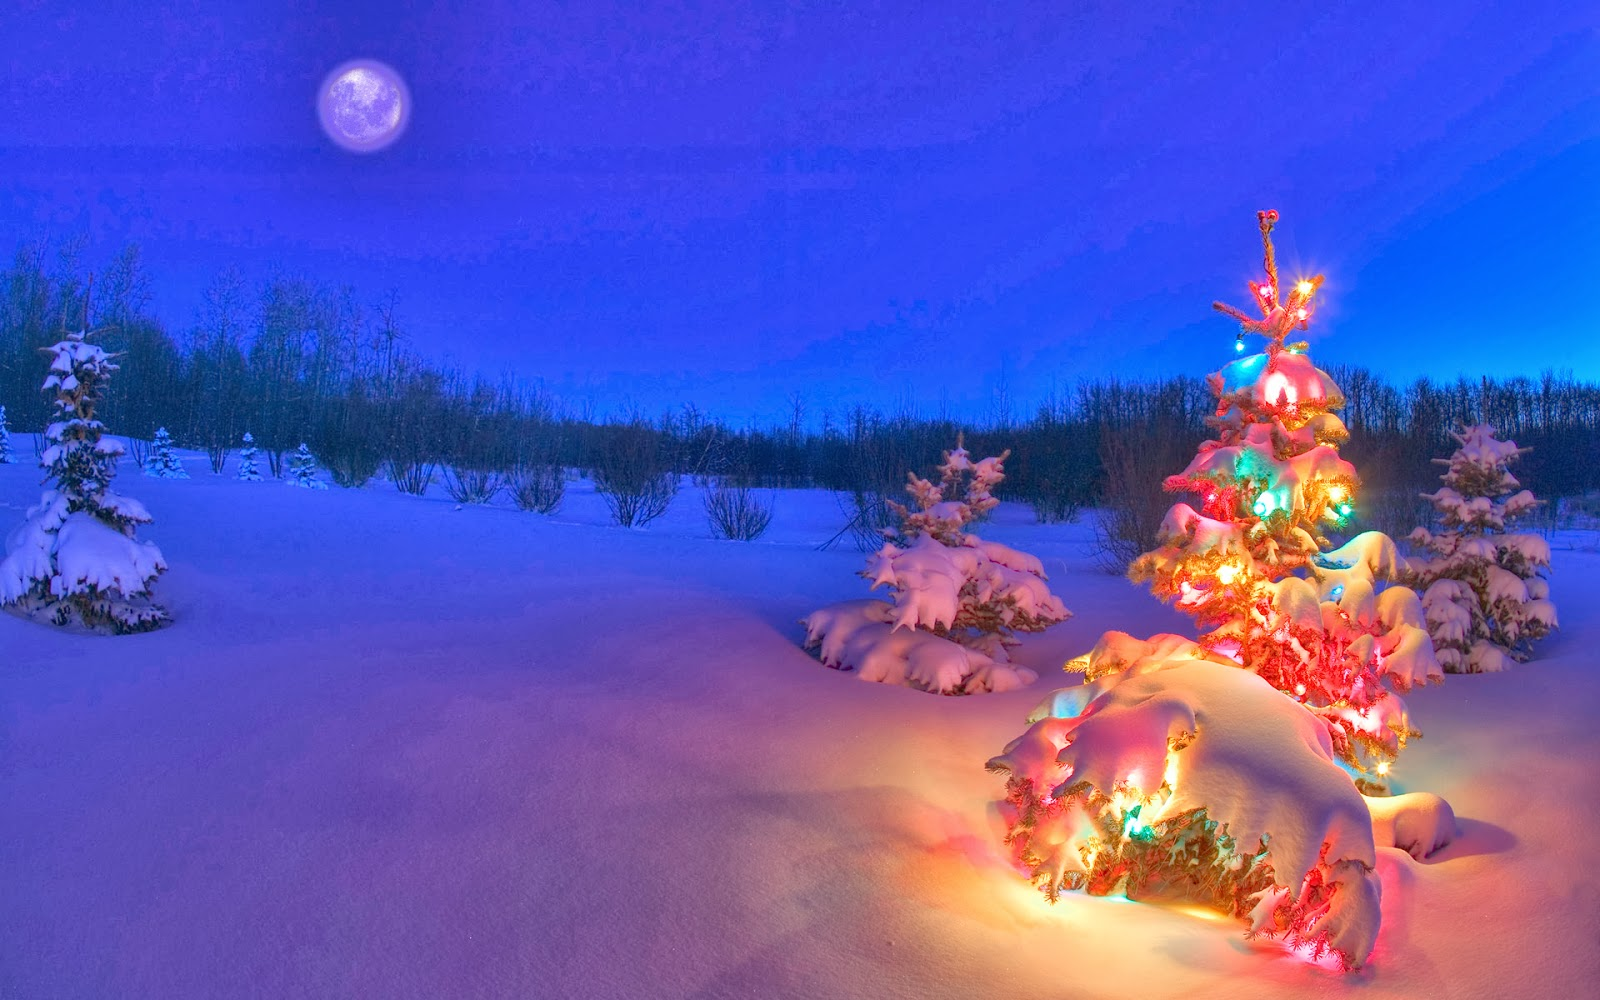 Snowy night background hd wallpapers blog - Holiday wallpaper hd ...